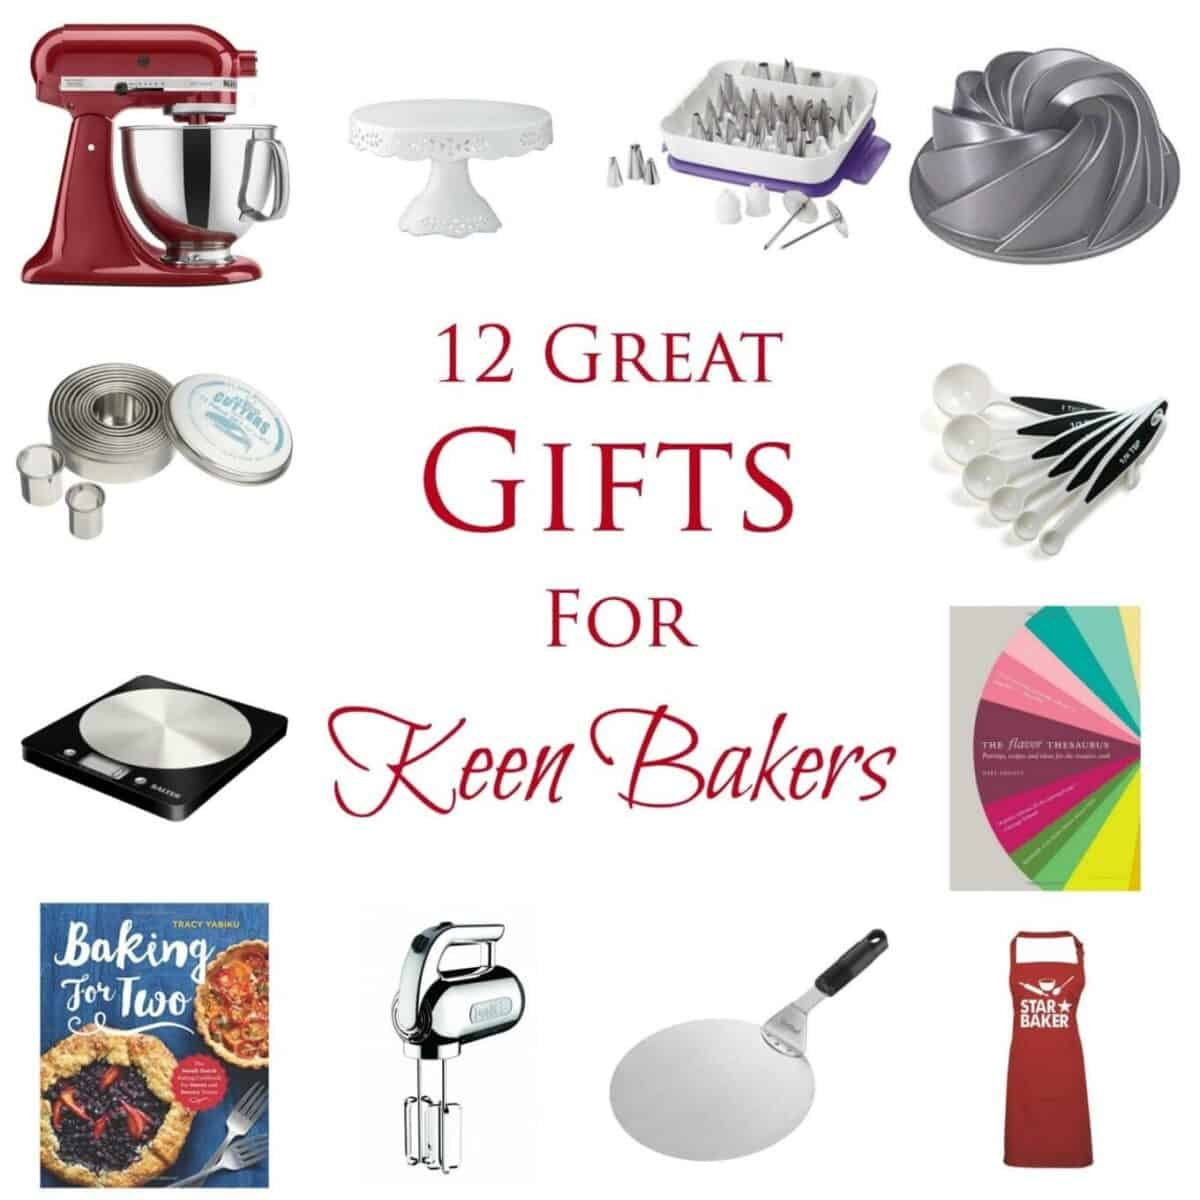 Collage of gifts suitable for bakers with text overlay